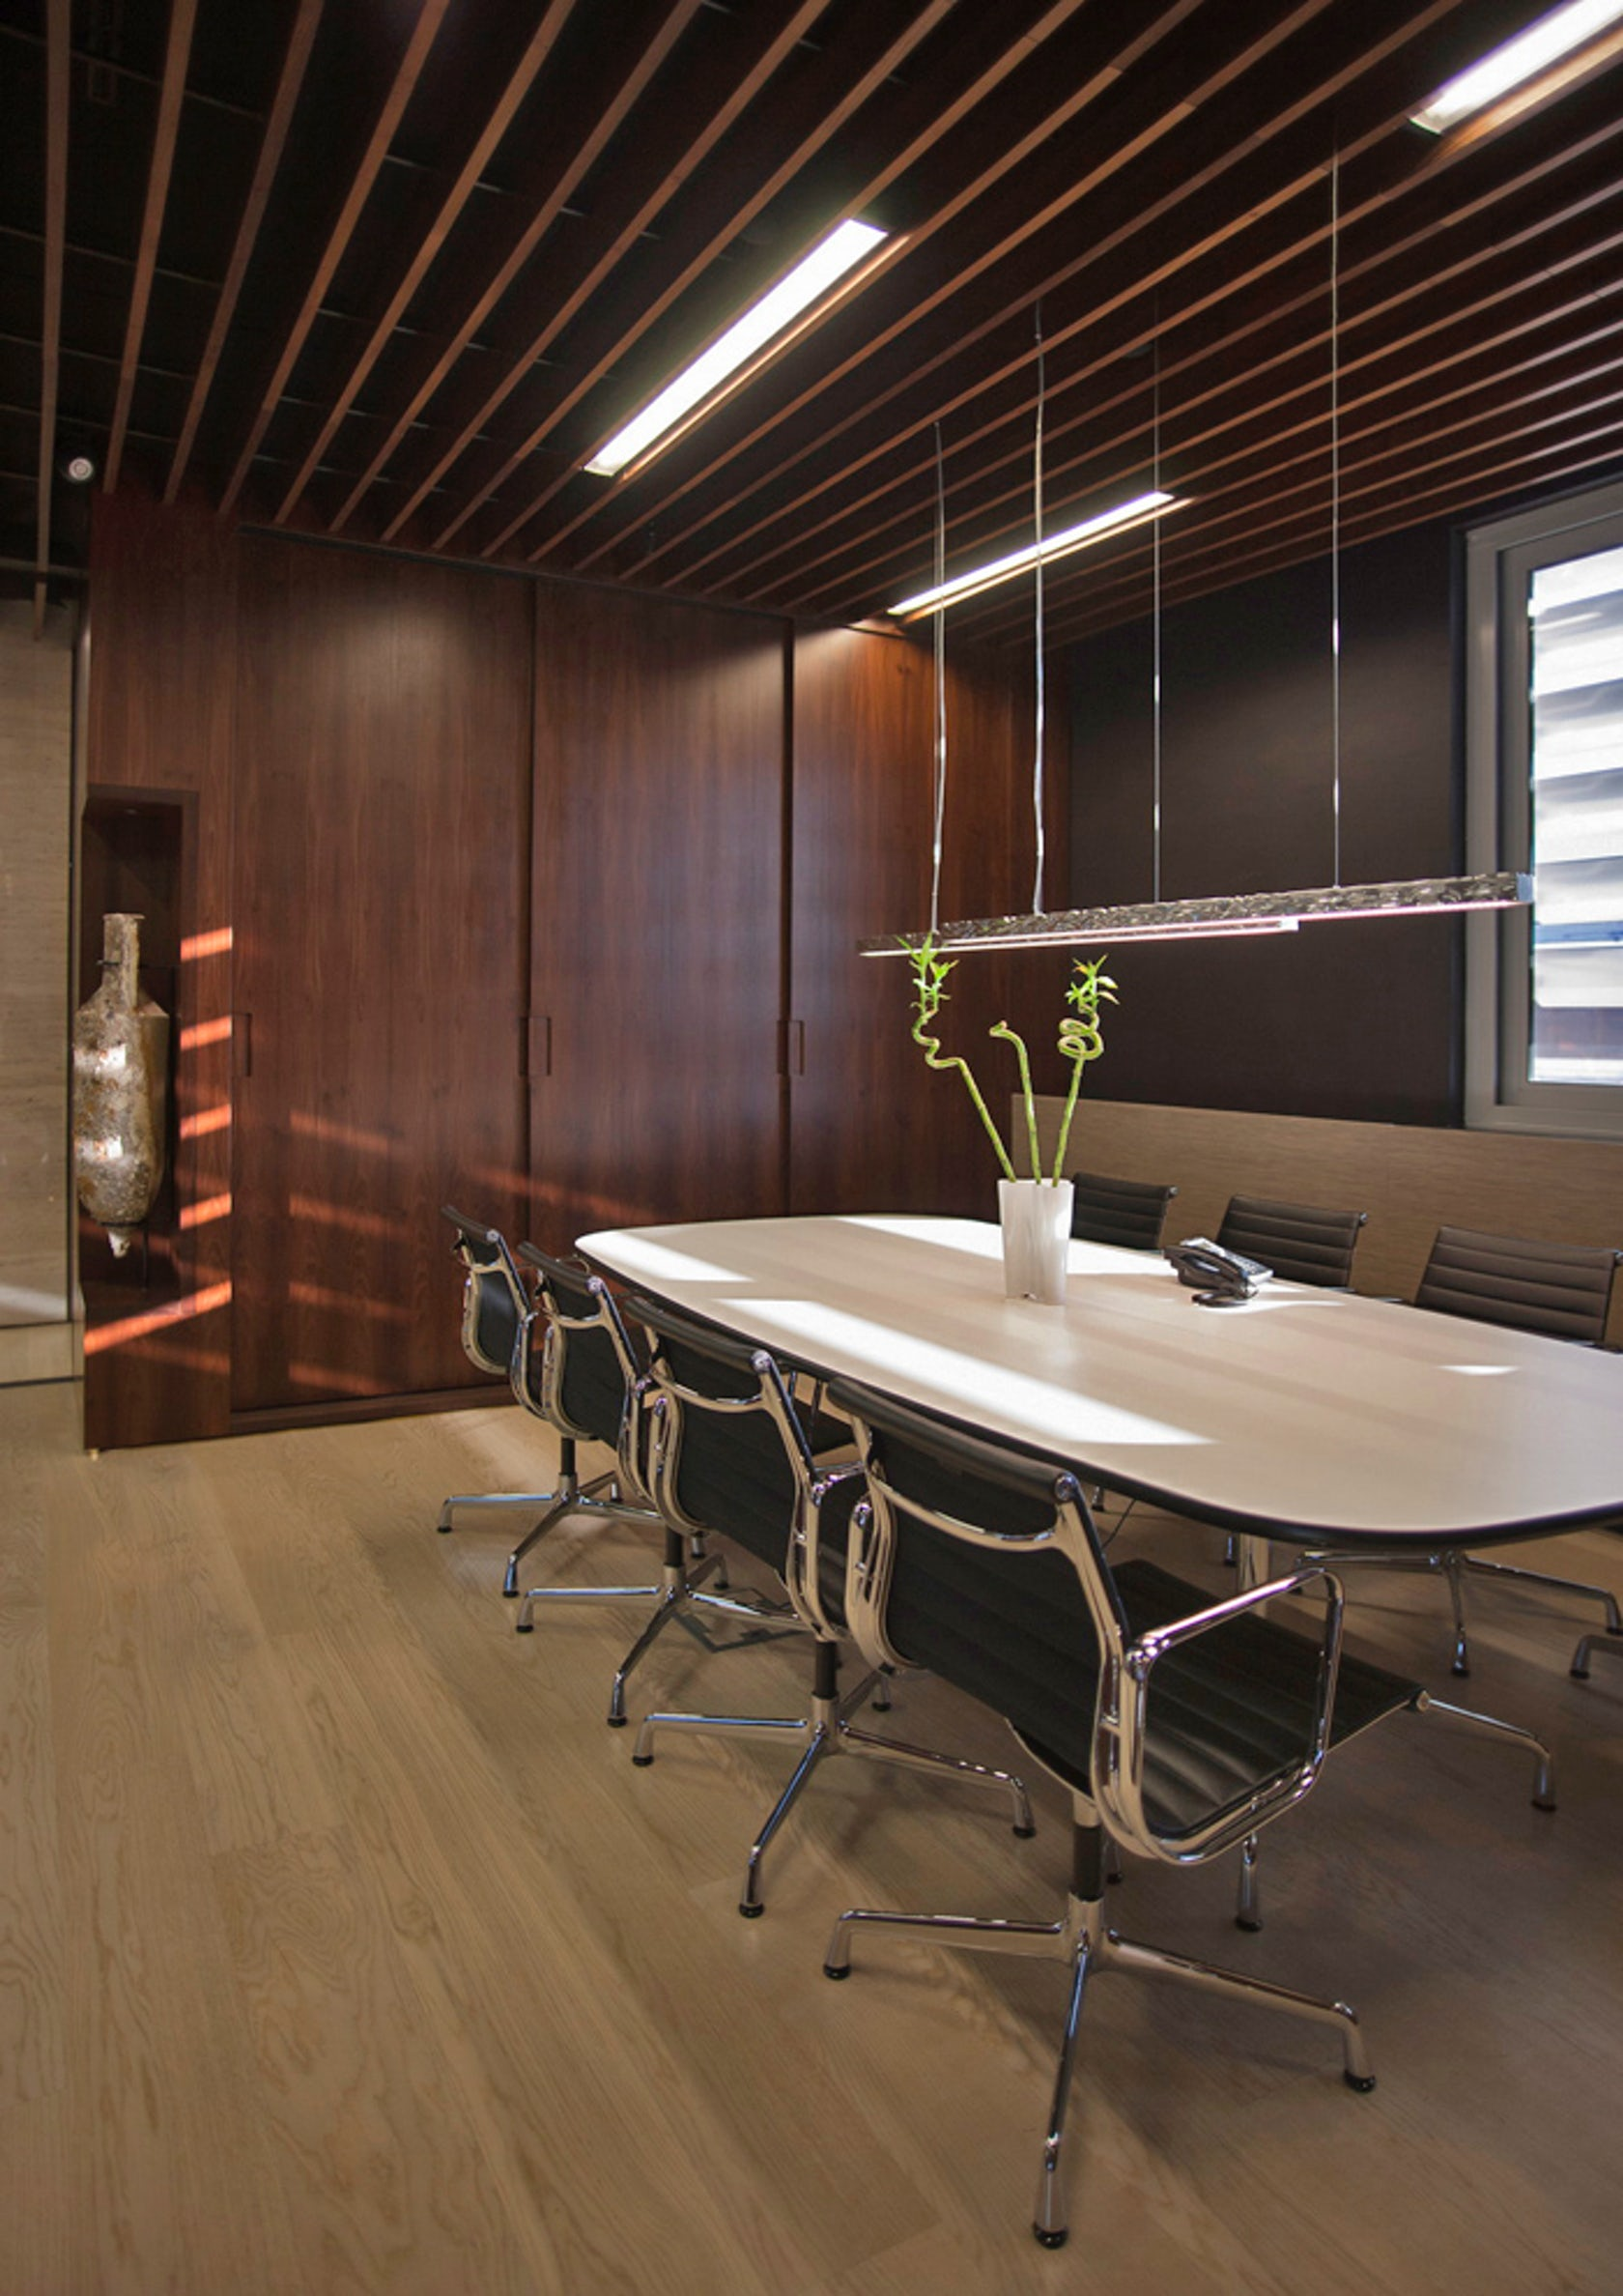 Law office interior architizer for Interior design law office